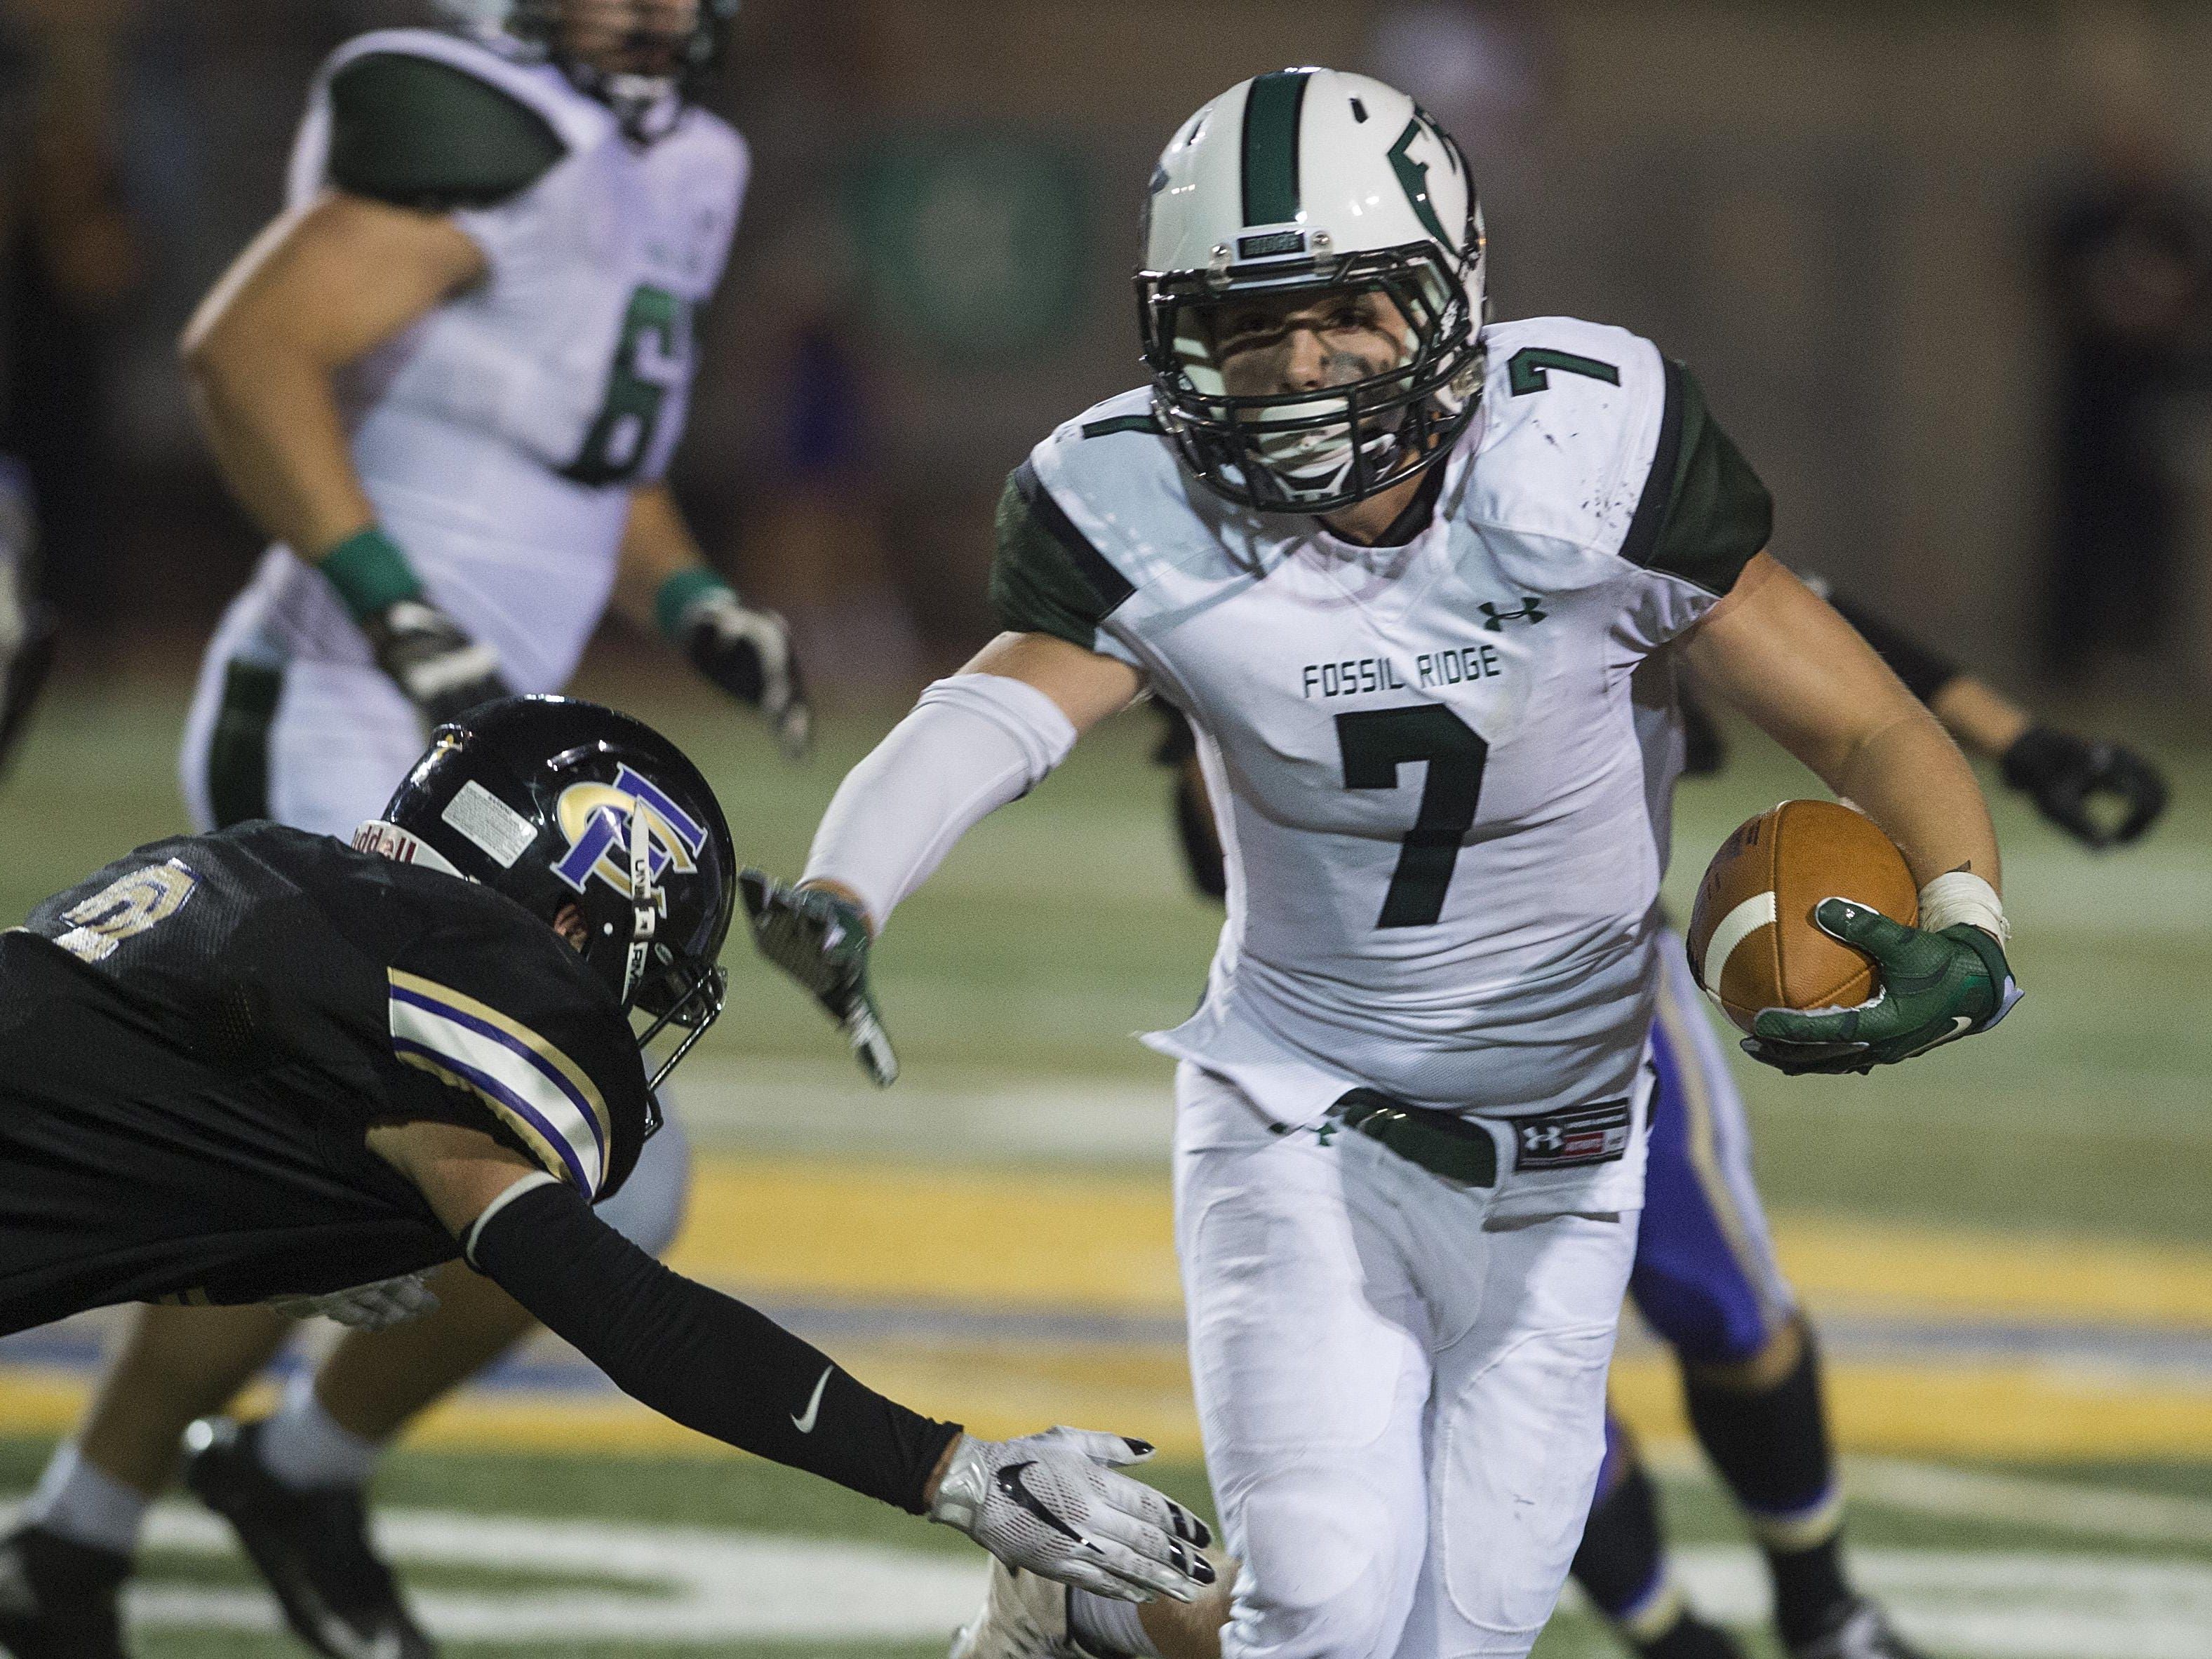 Fossil Ridge's Cole Schilling in a game earlier this season. The SaberCats play Poudre at 7 p.m. Friday at French Field.